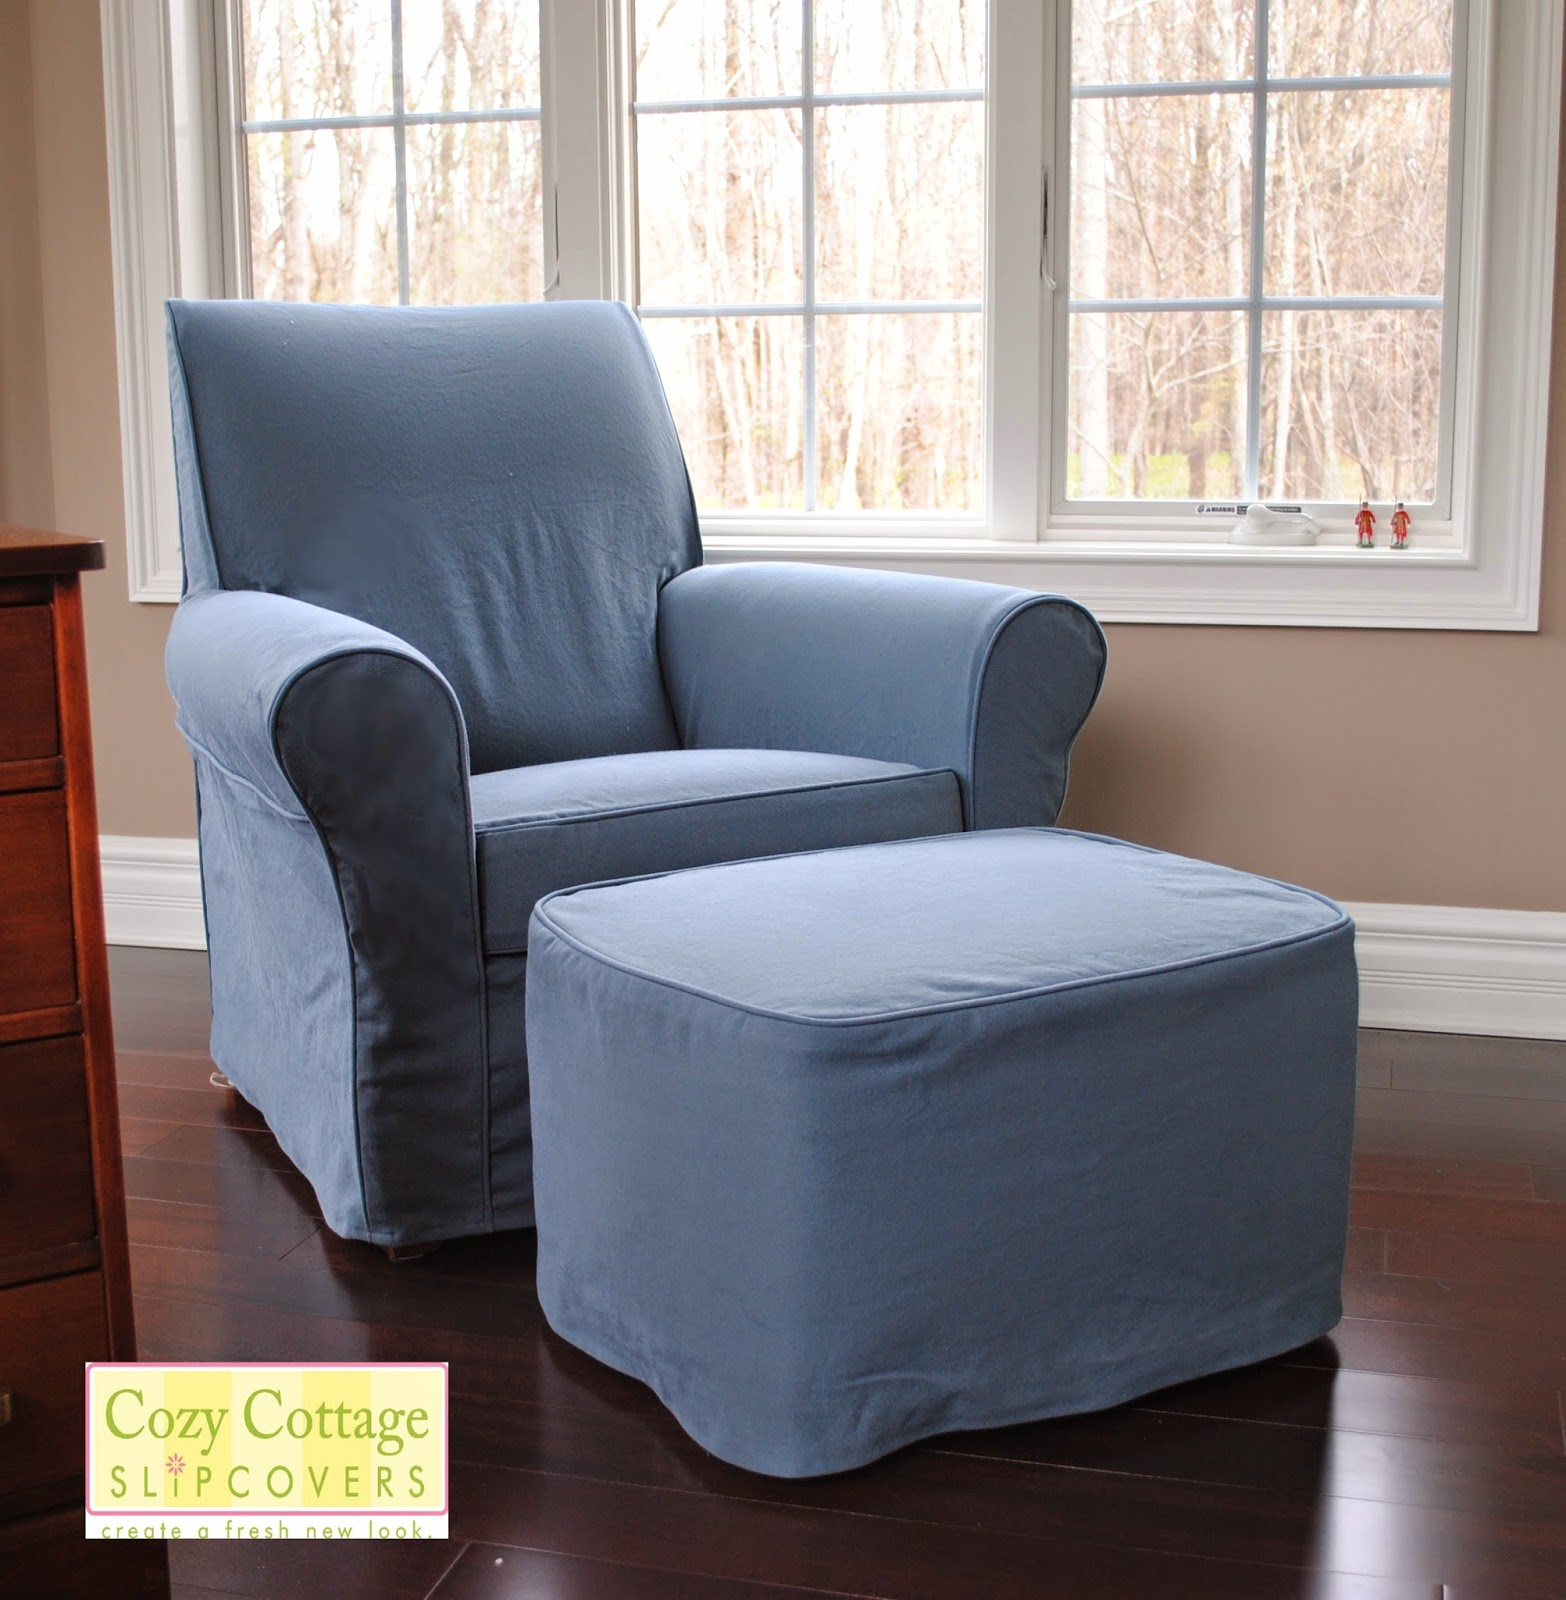 Chair And Ottoman Slipcover Set That Unfolds Into A Bed Cozy Cottage Slipcovers